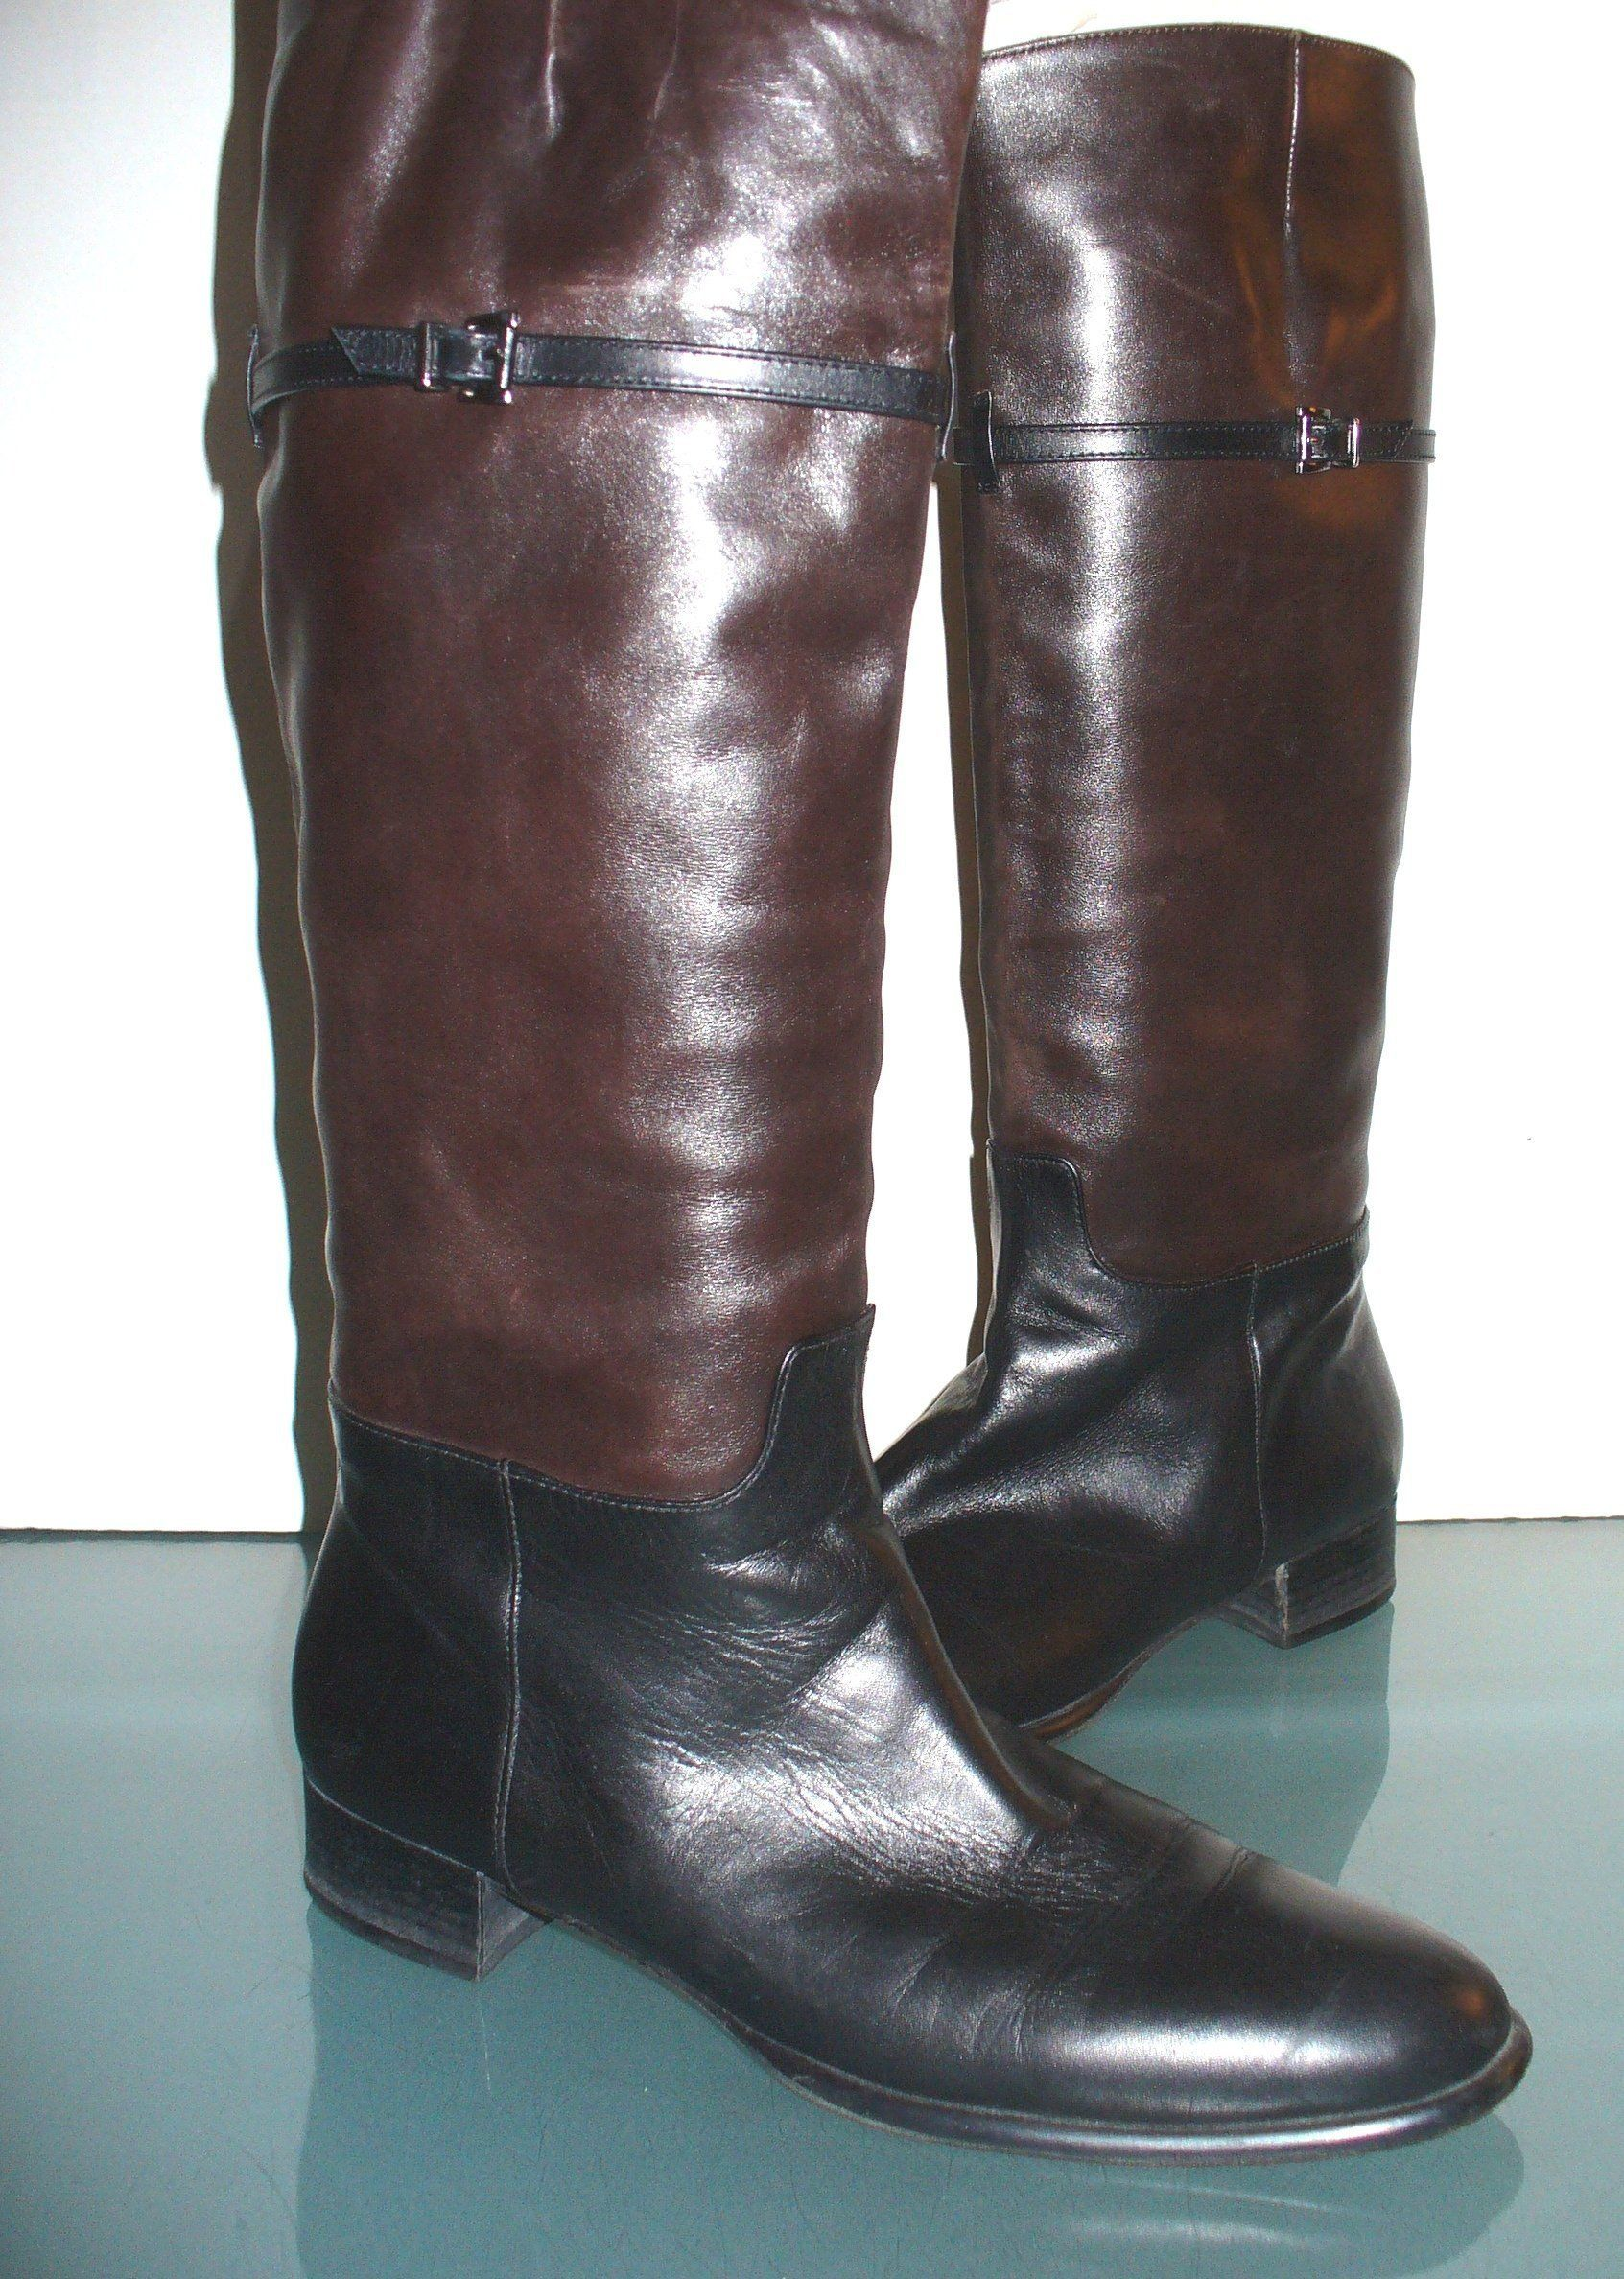 3df244d973 Via Spiga Made in Italy Equestrian Style Boots Size 8.5 N by EurotrashItaly  on Etsy